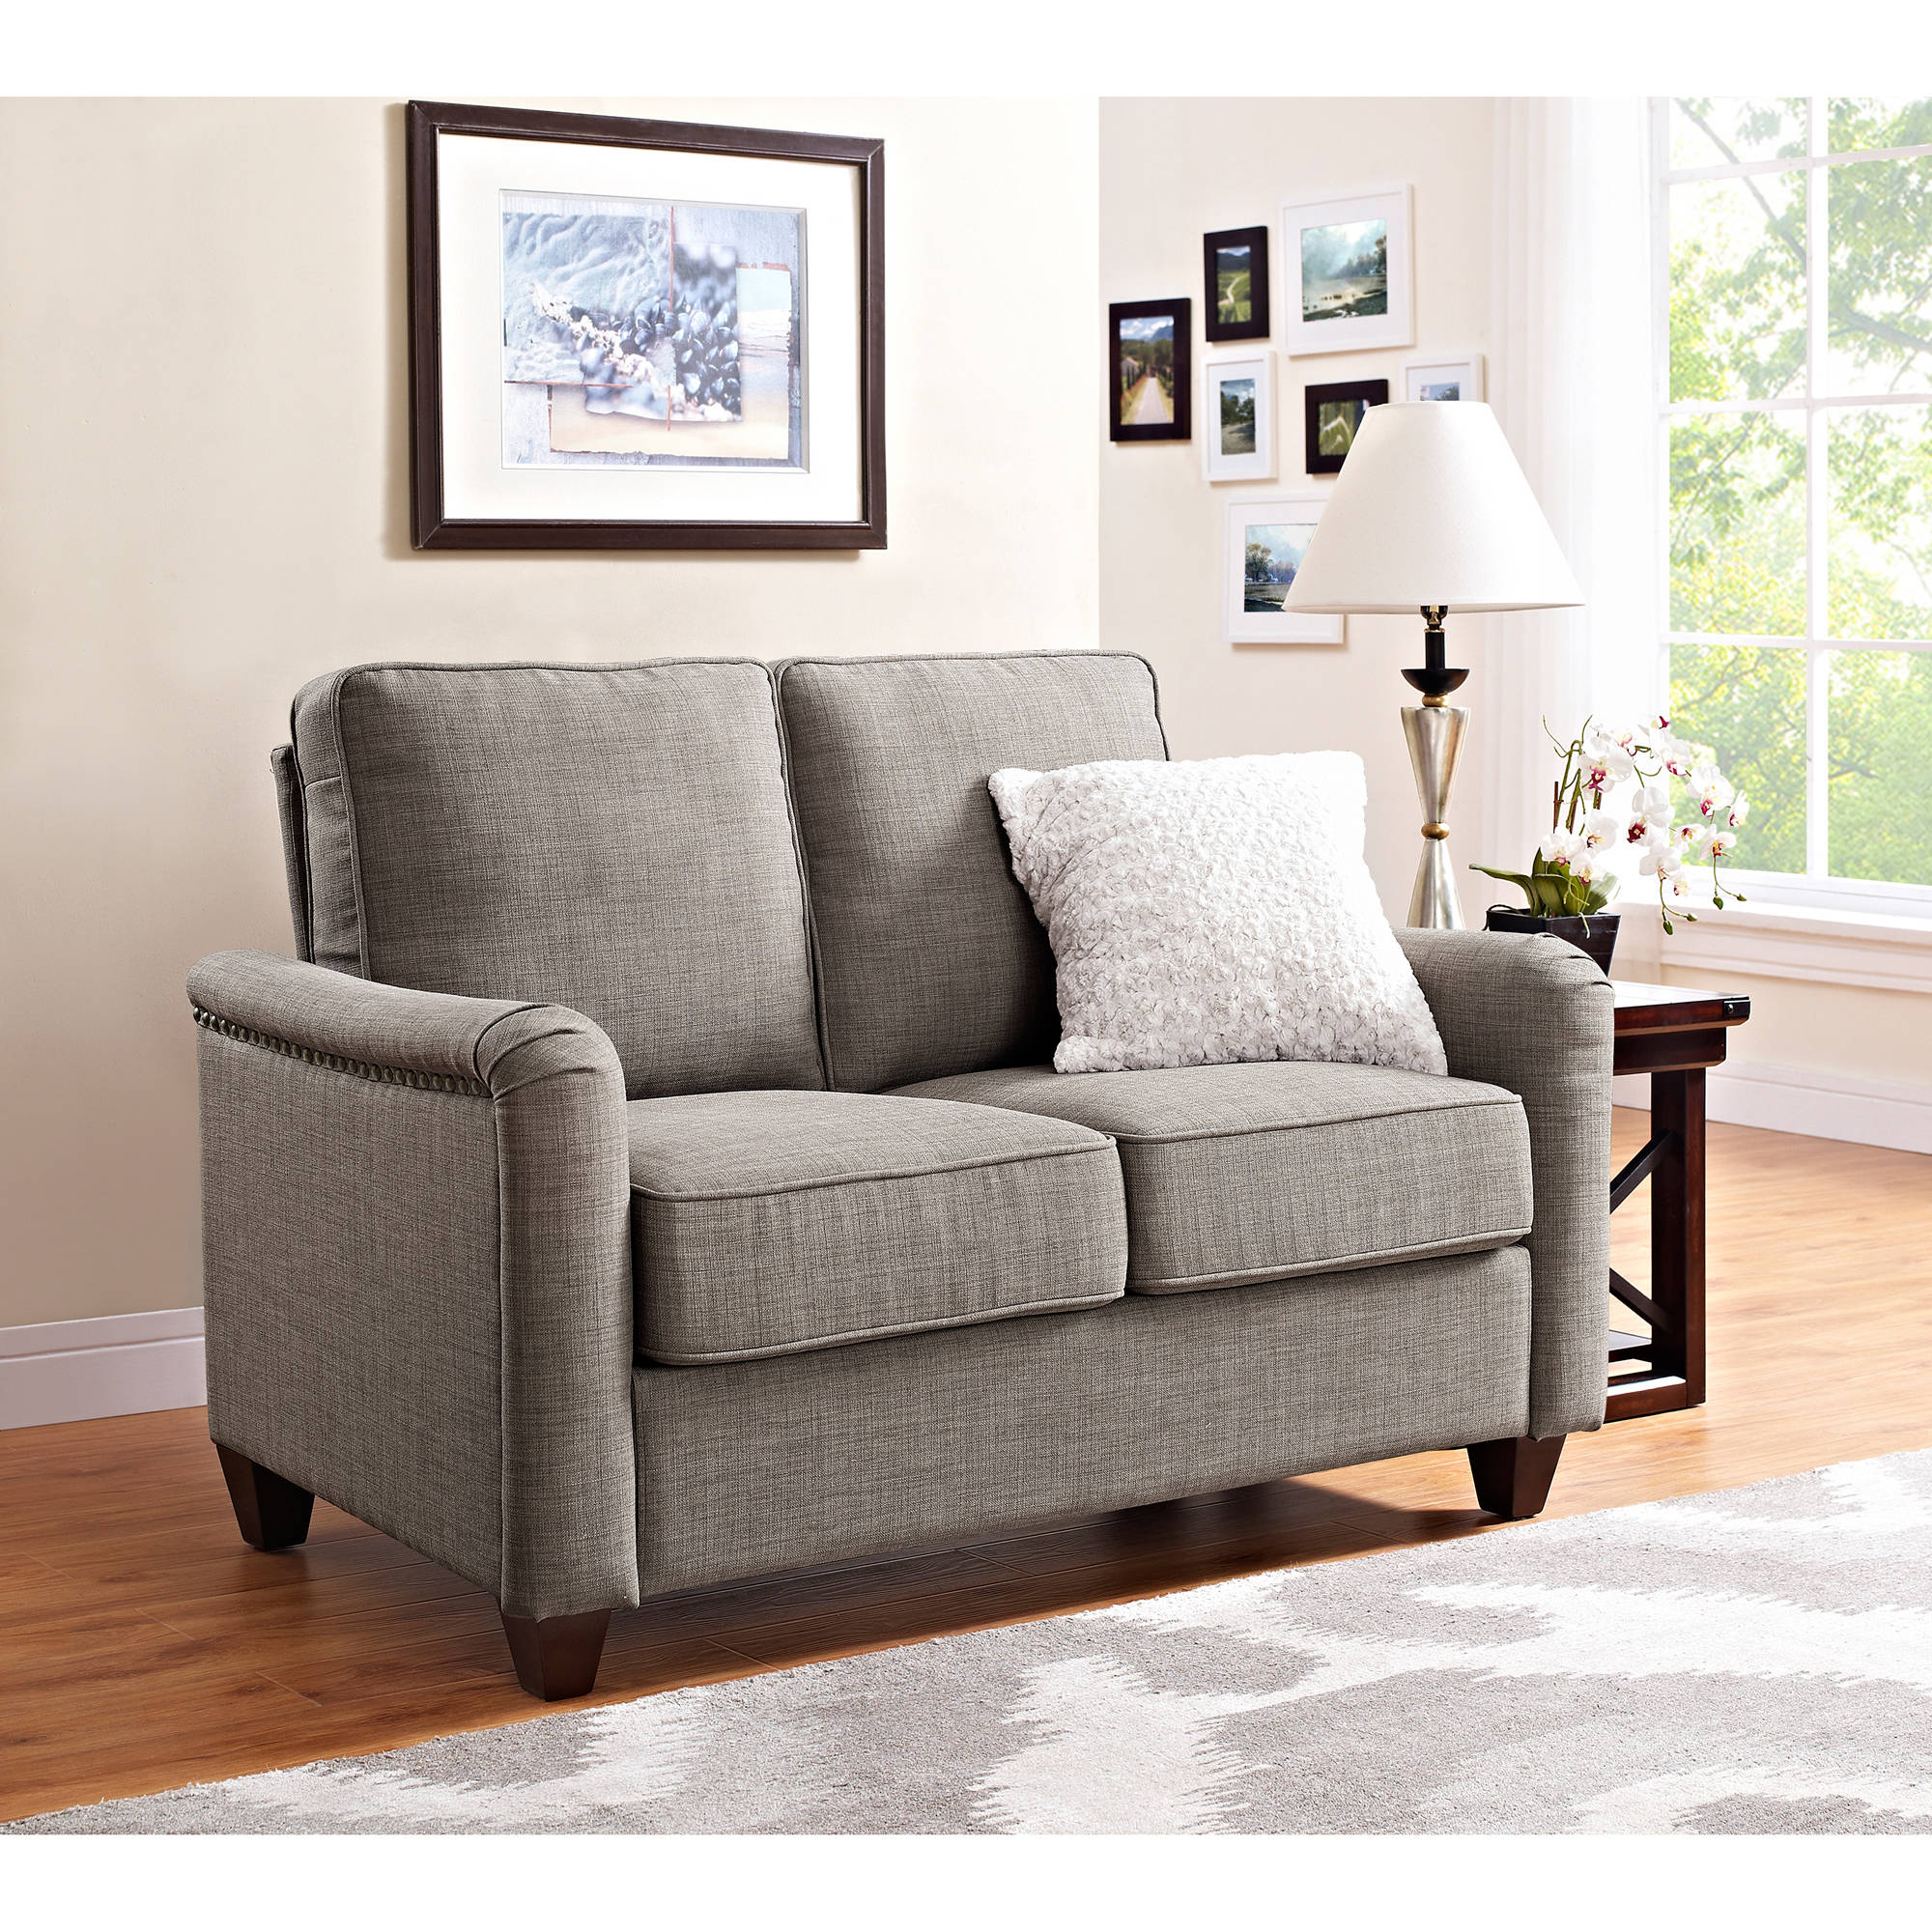 American Furniture Classics Deer Valley 4 Piece Set with Walmart Living Room Sets